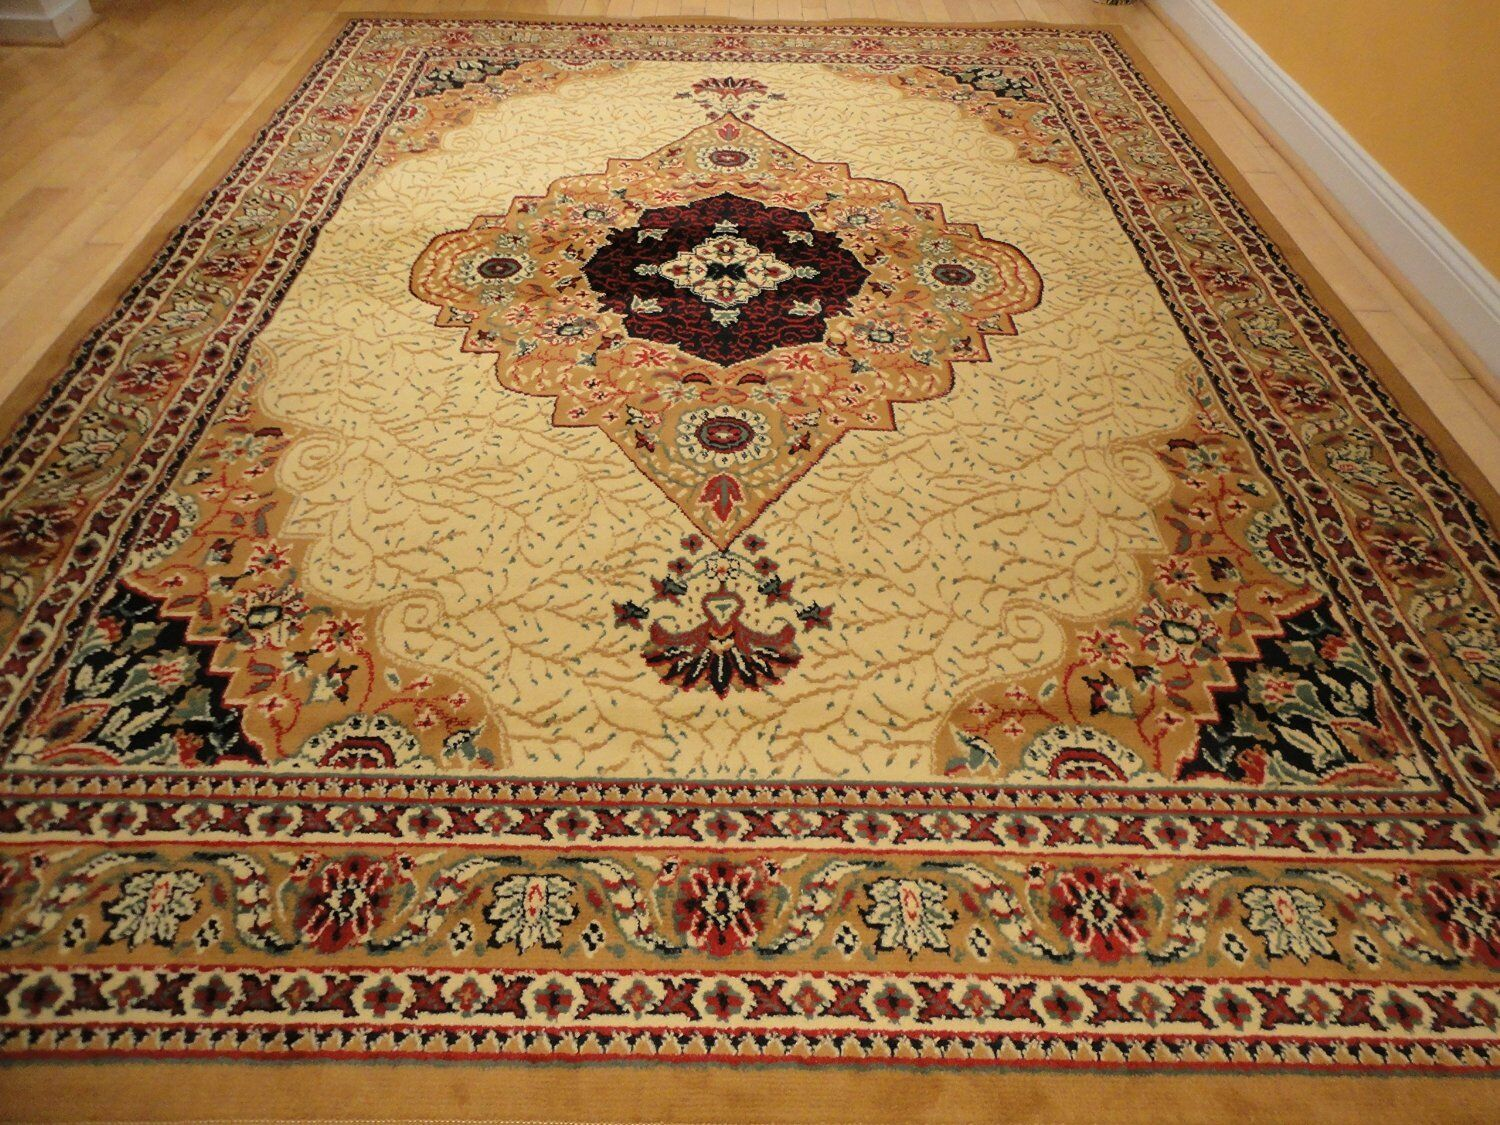 Beige Area Rugs 8x11 Persian Rugs 5x8 Carpet 8x11 Cream Trad